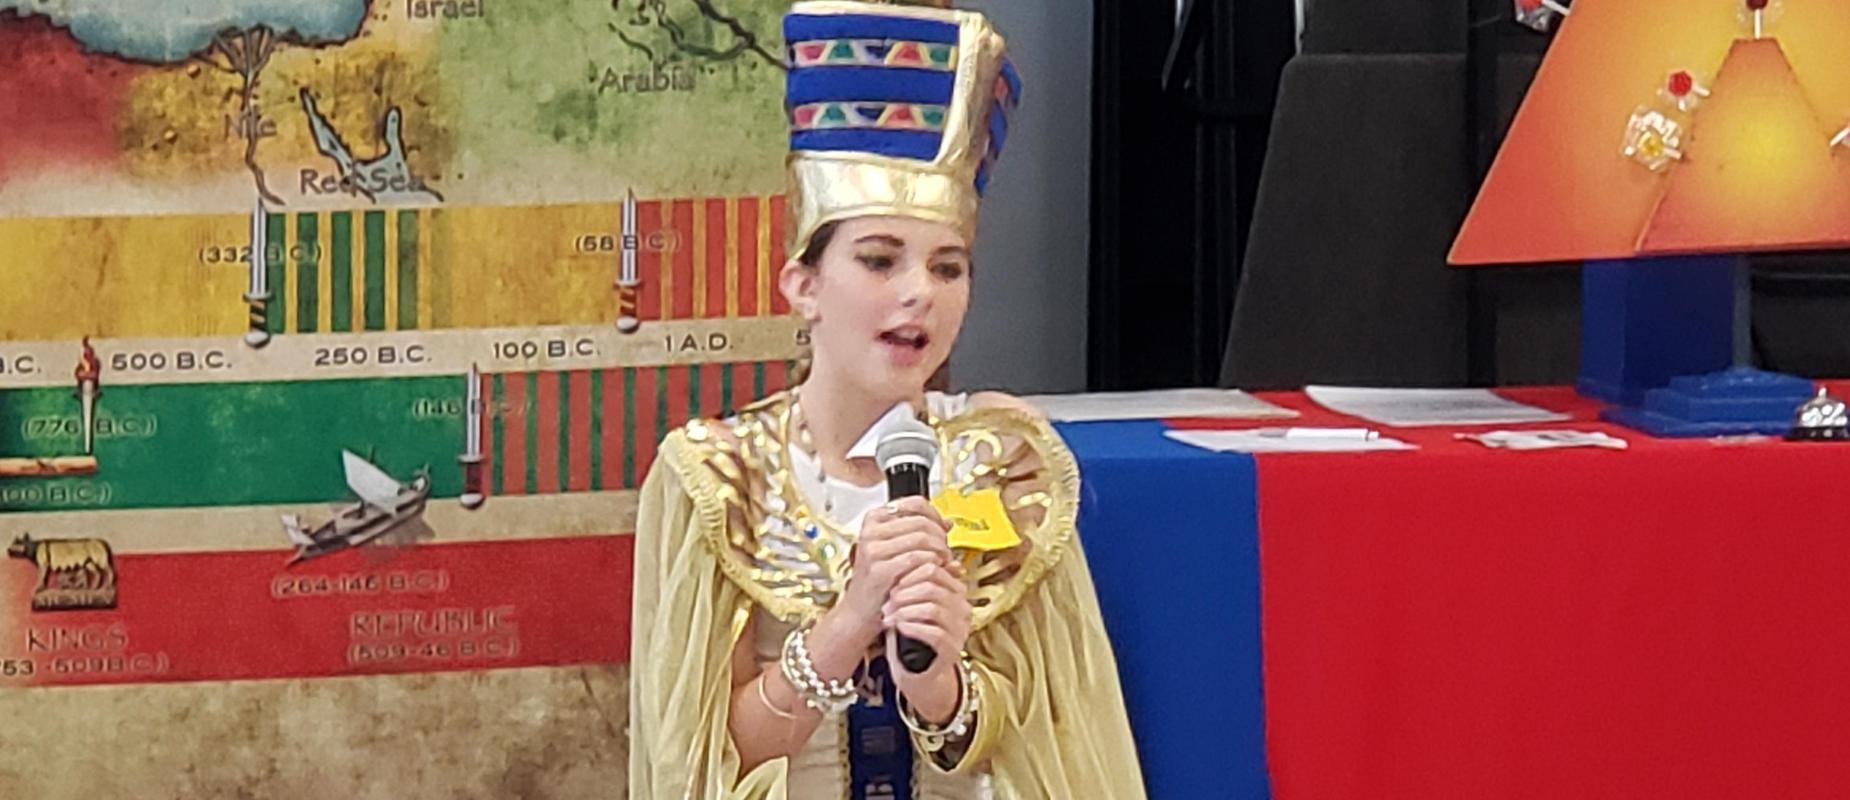 Student wearing Egyptian dress